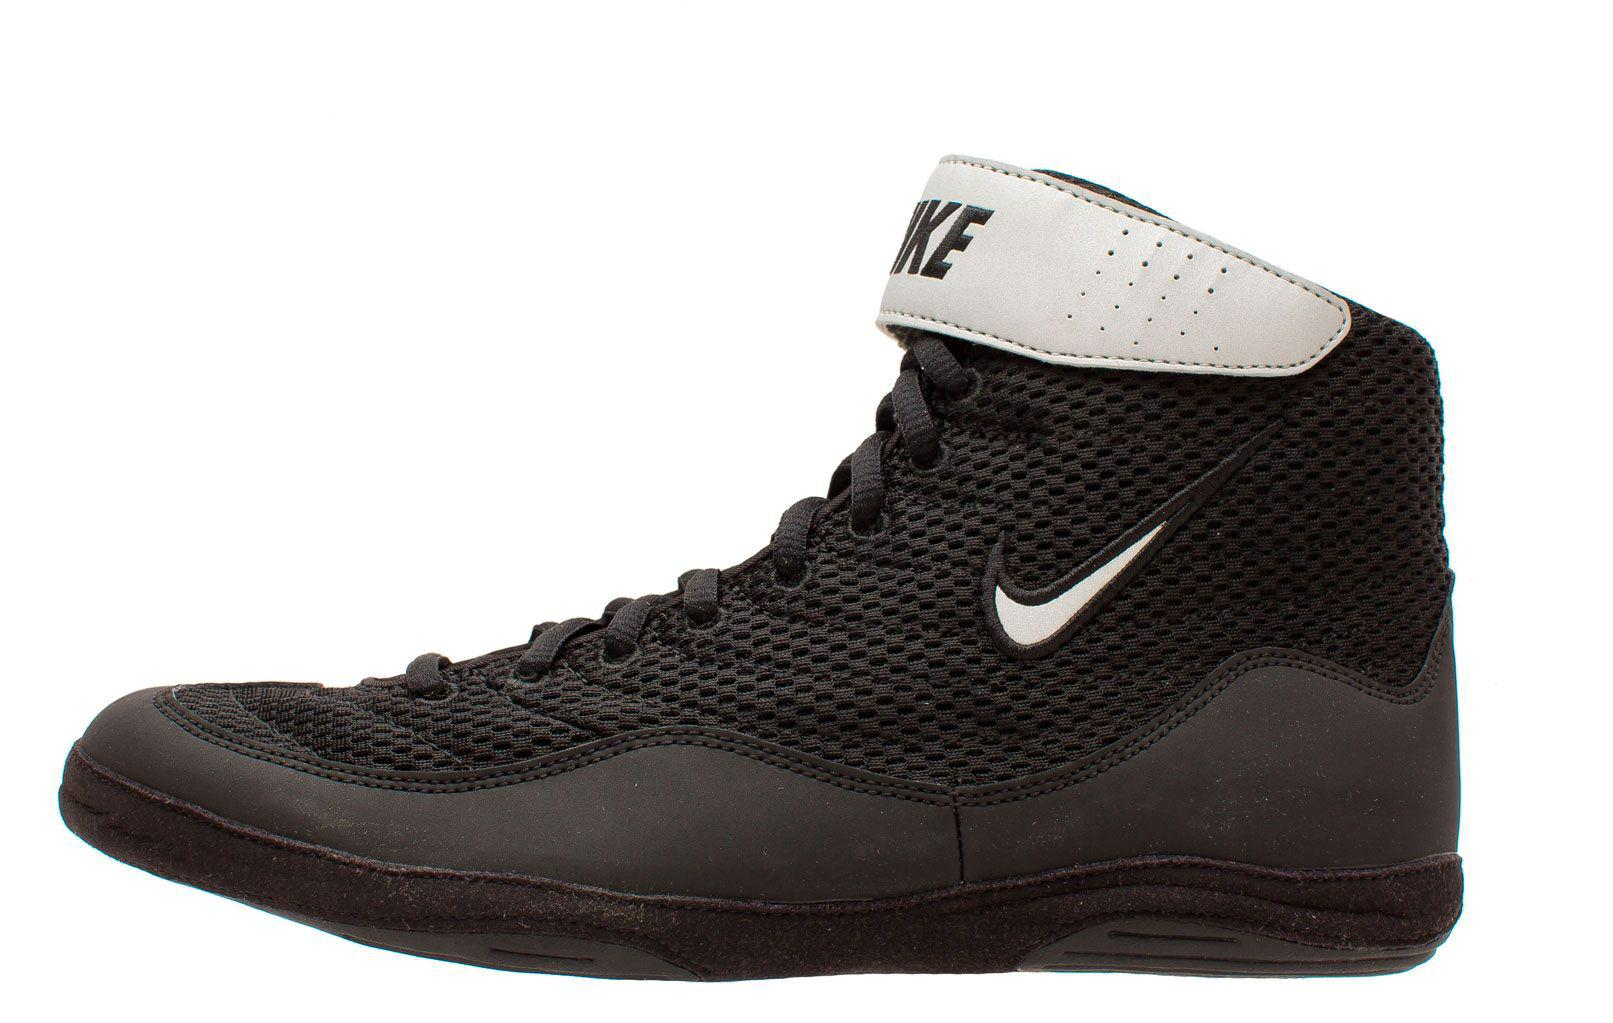 0186849e9bc705 Lyst - Nike Inflict 3 Wrestling Shoes in Black for Men